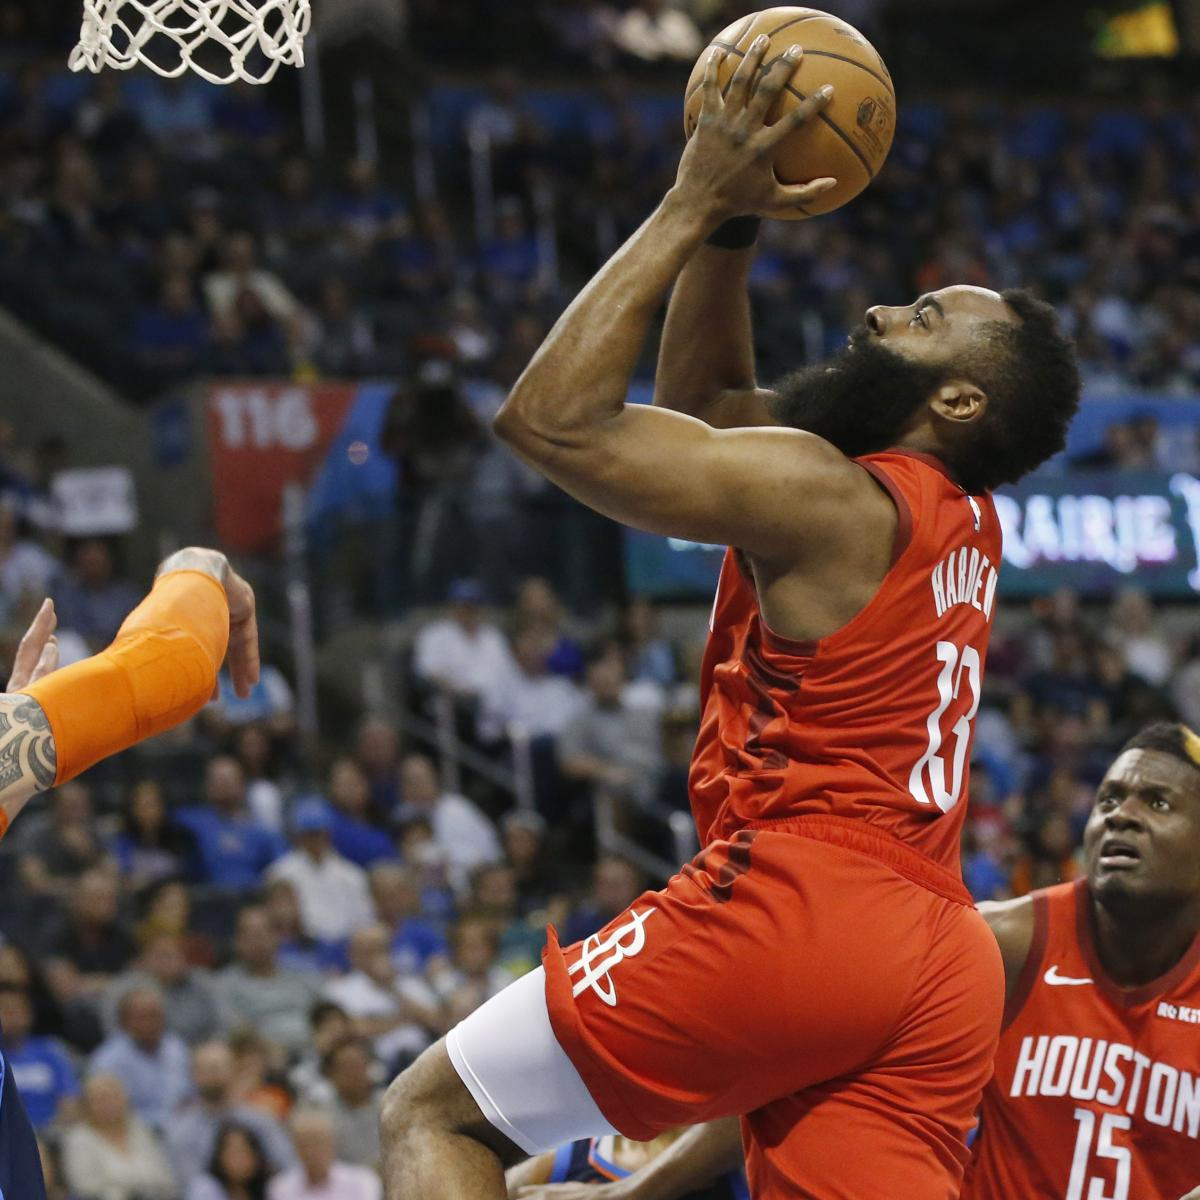 NBA Playoffs 2019: Game Times, TV Schedule And Predictions